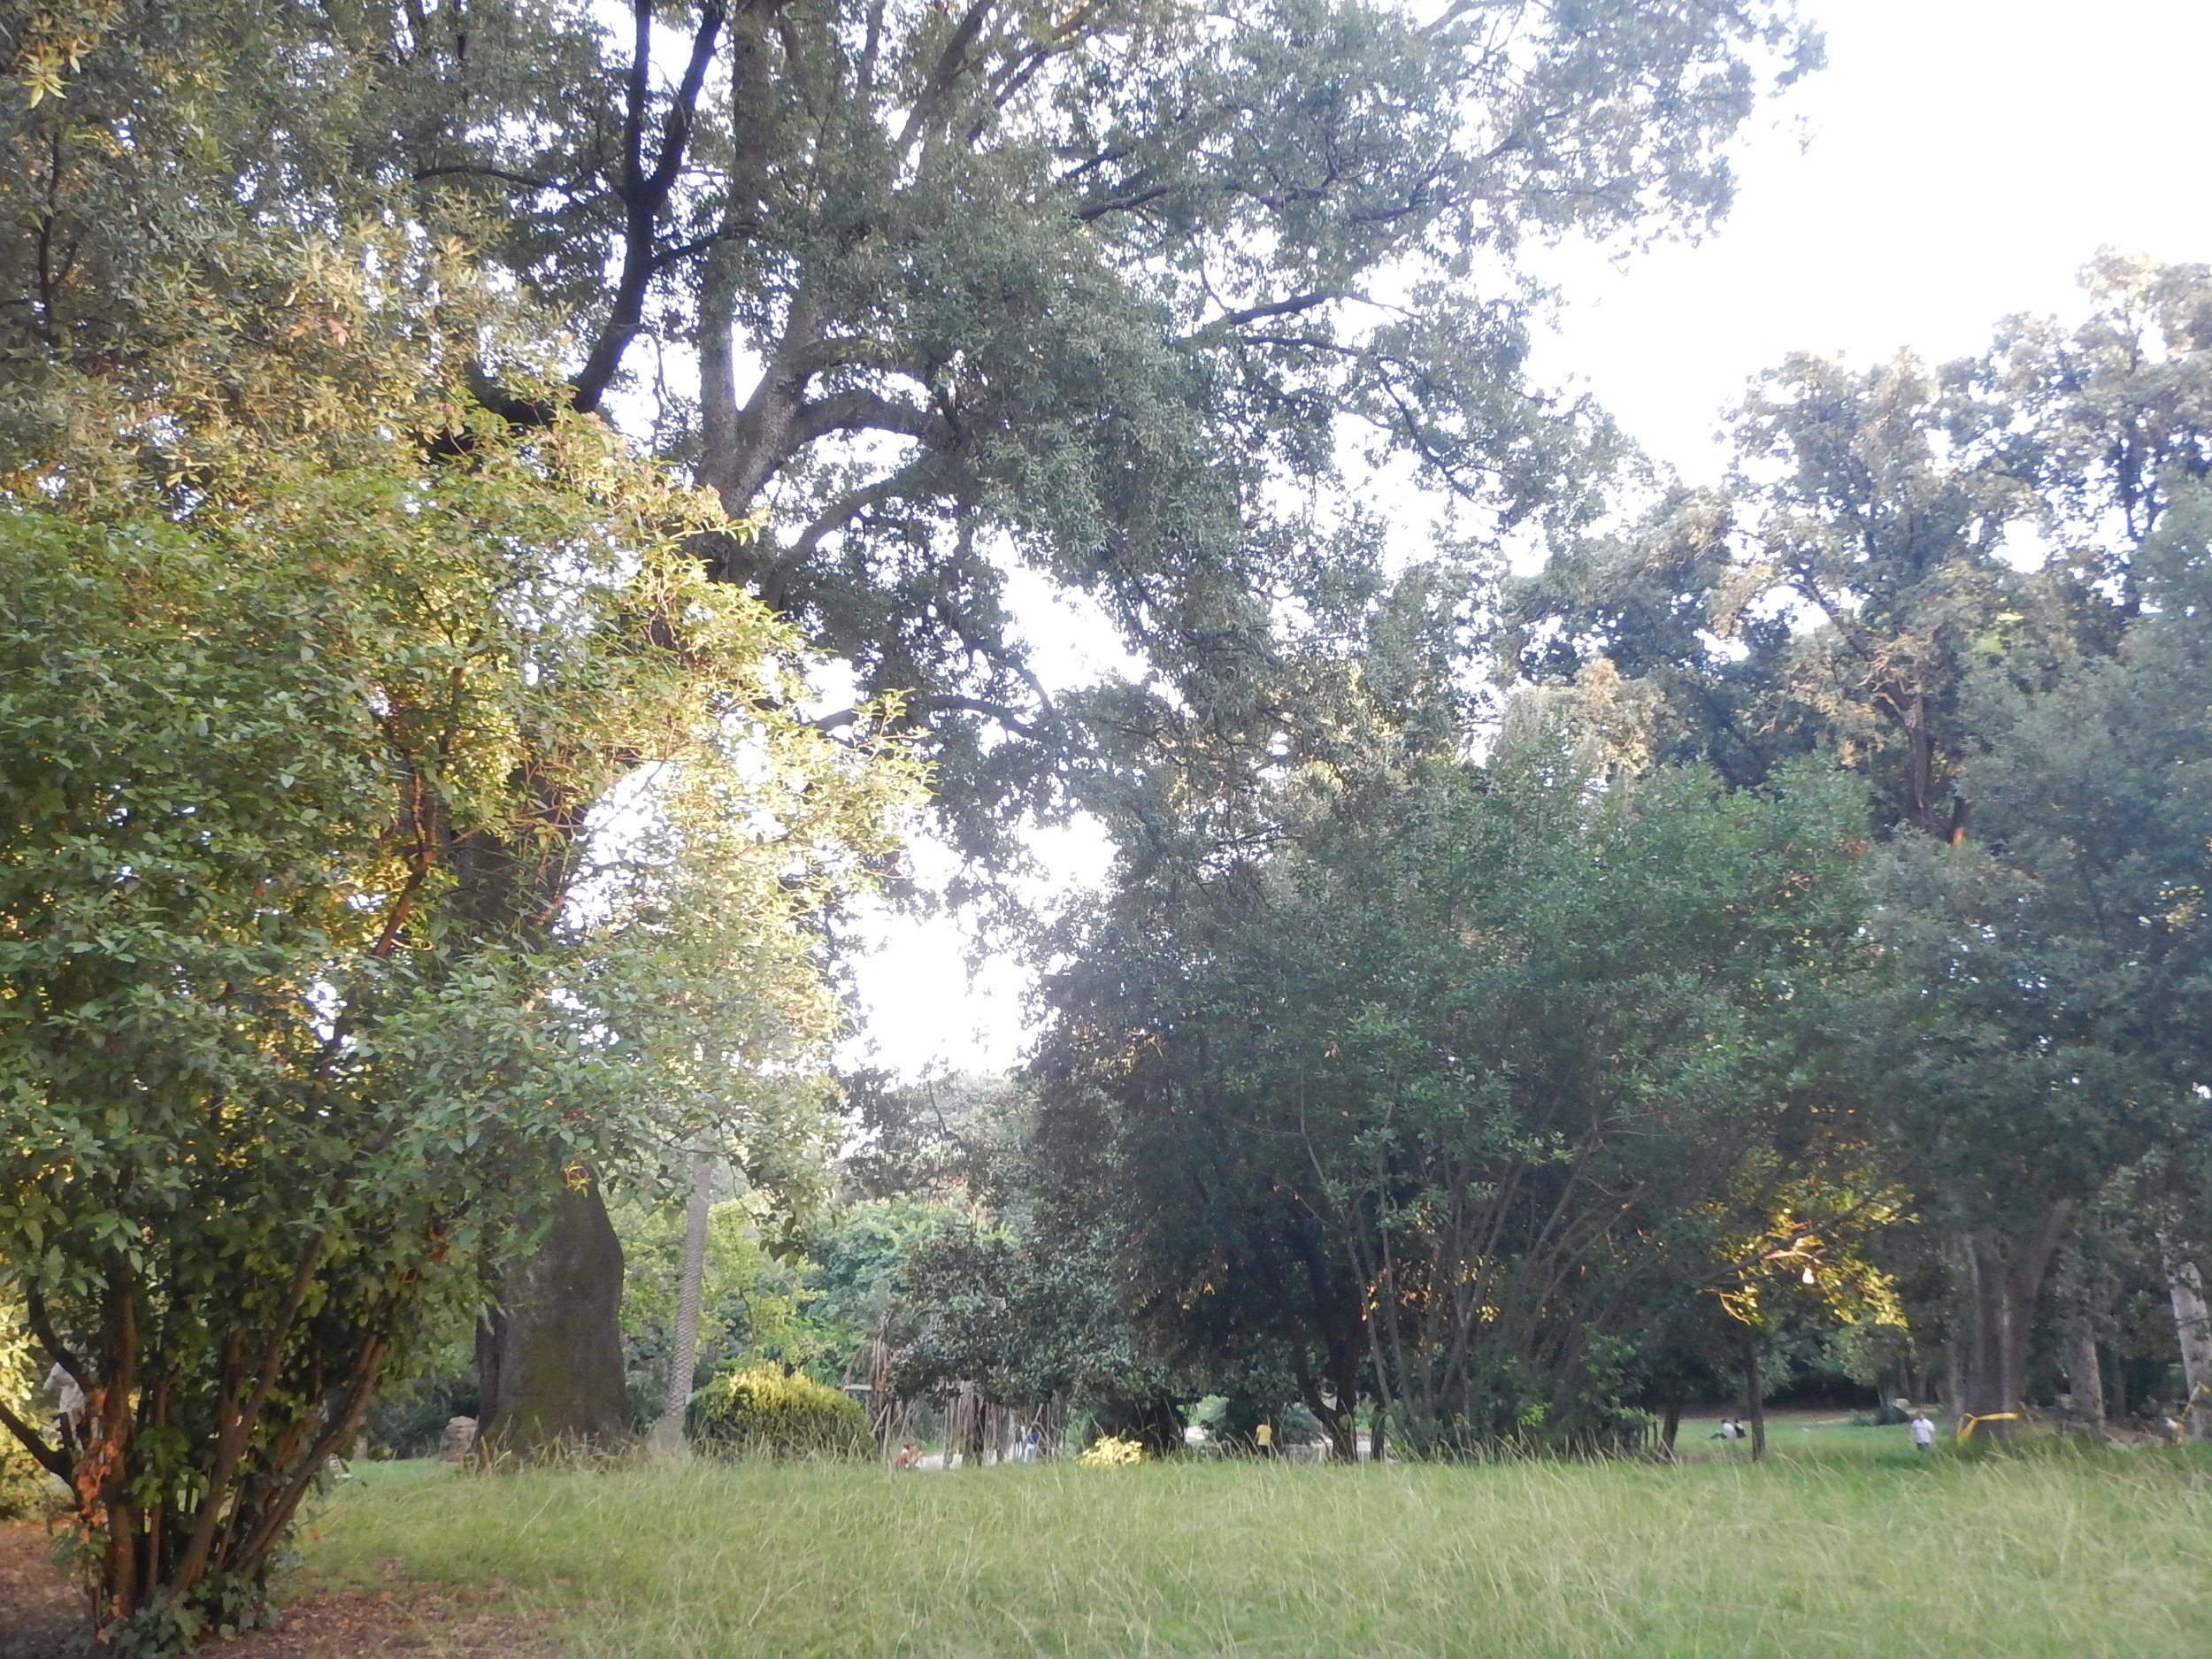 There is no longer any evidence of the gardens previous grandeur, other than the magnificent old trees towering over the unkept grassed areas.